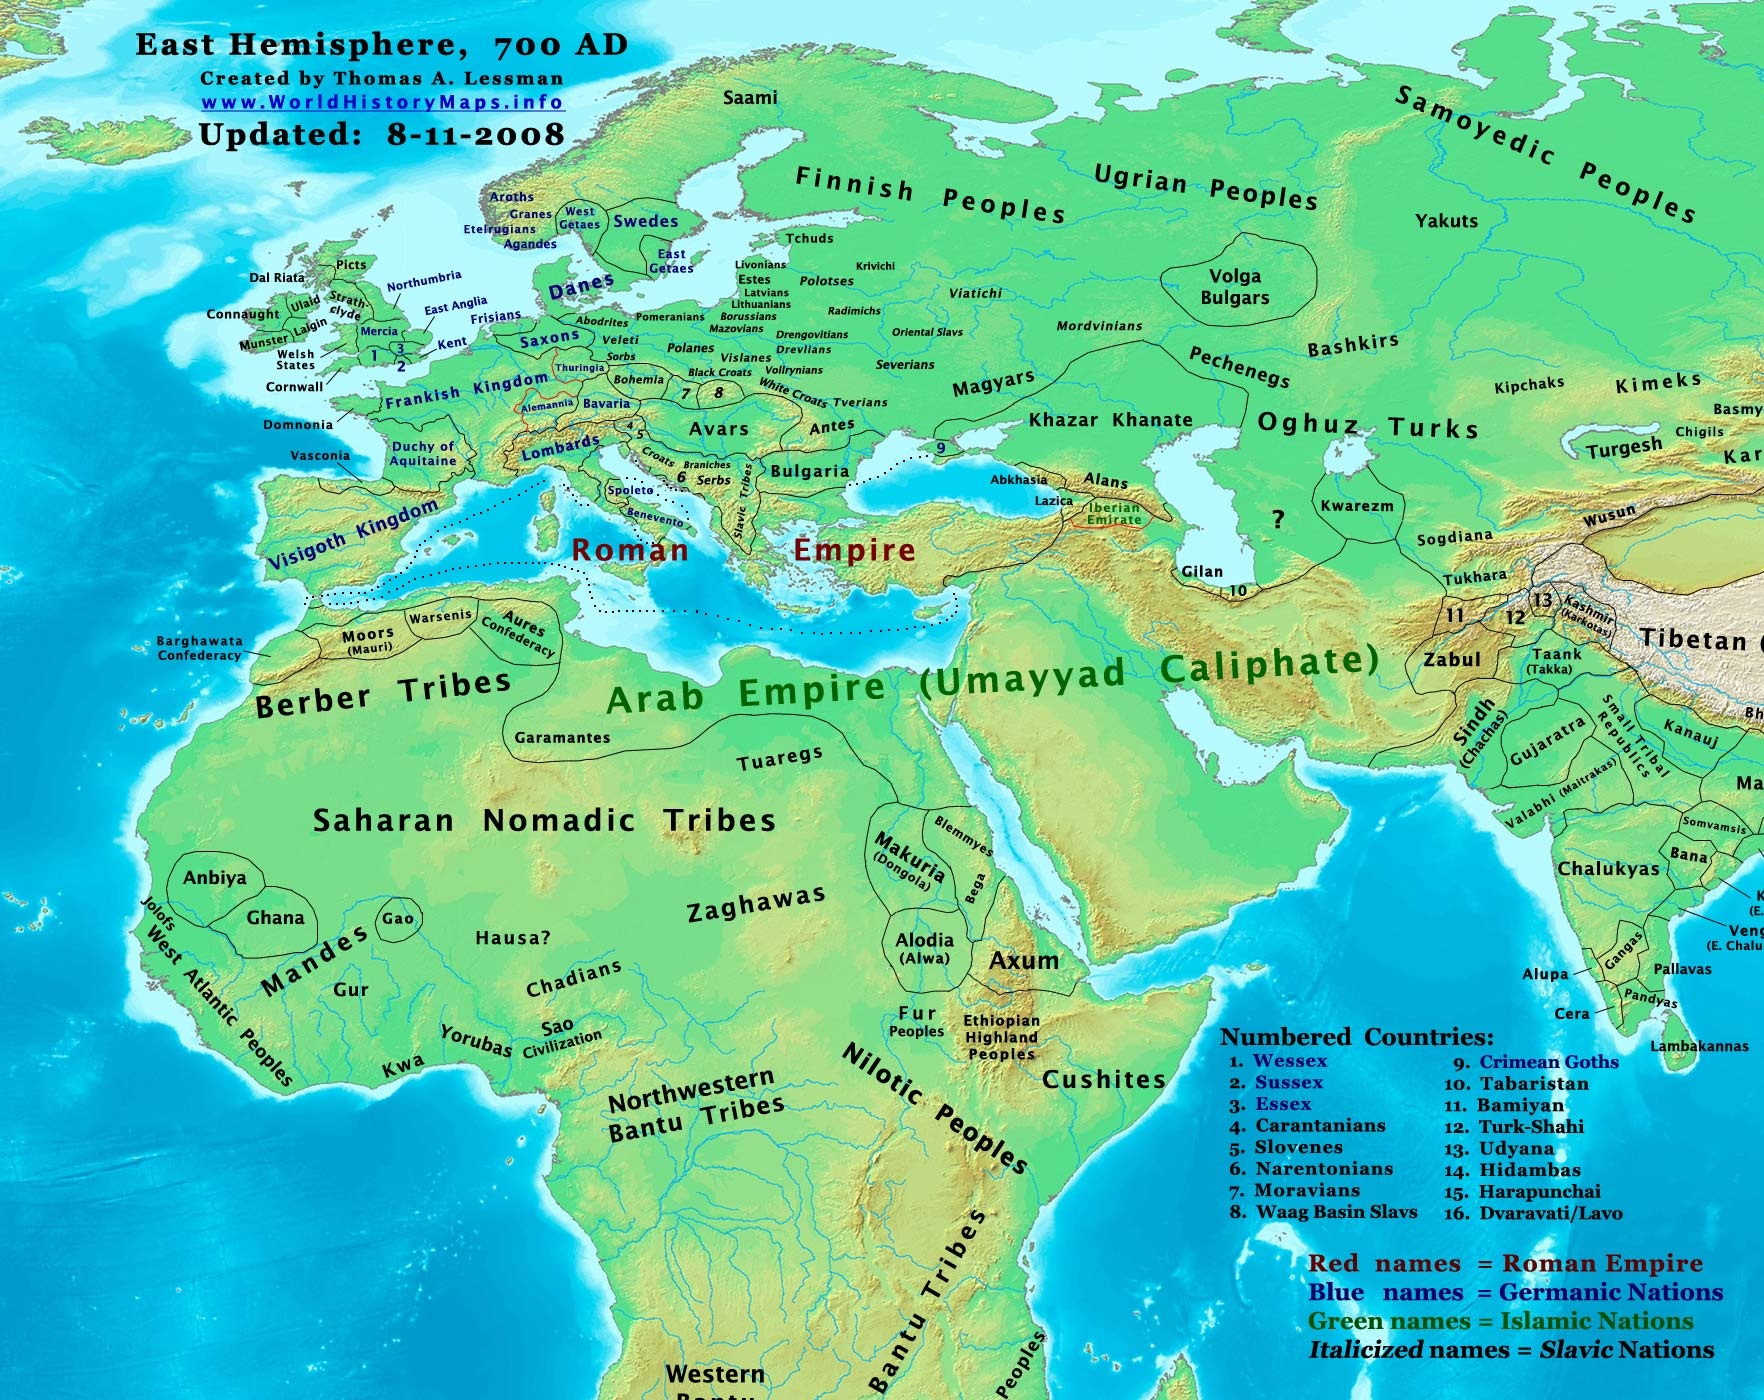 Maps the history of byzantium europe and the near east in 700 from worldhistorymapsfo gumiabroncs Image collections